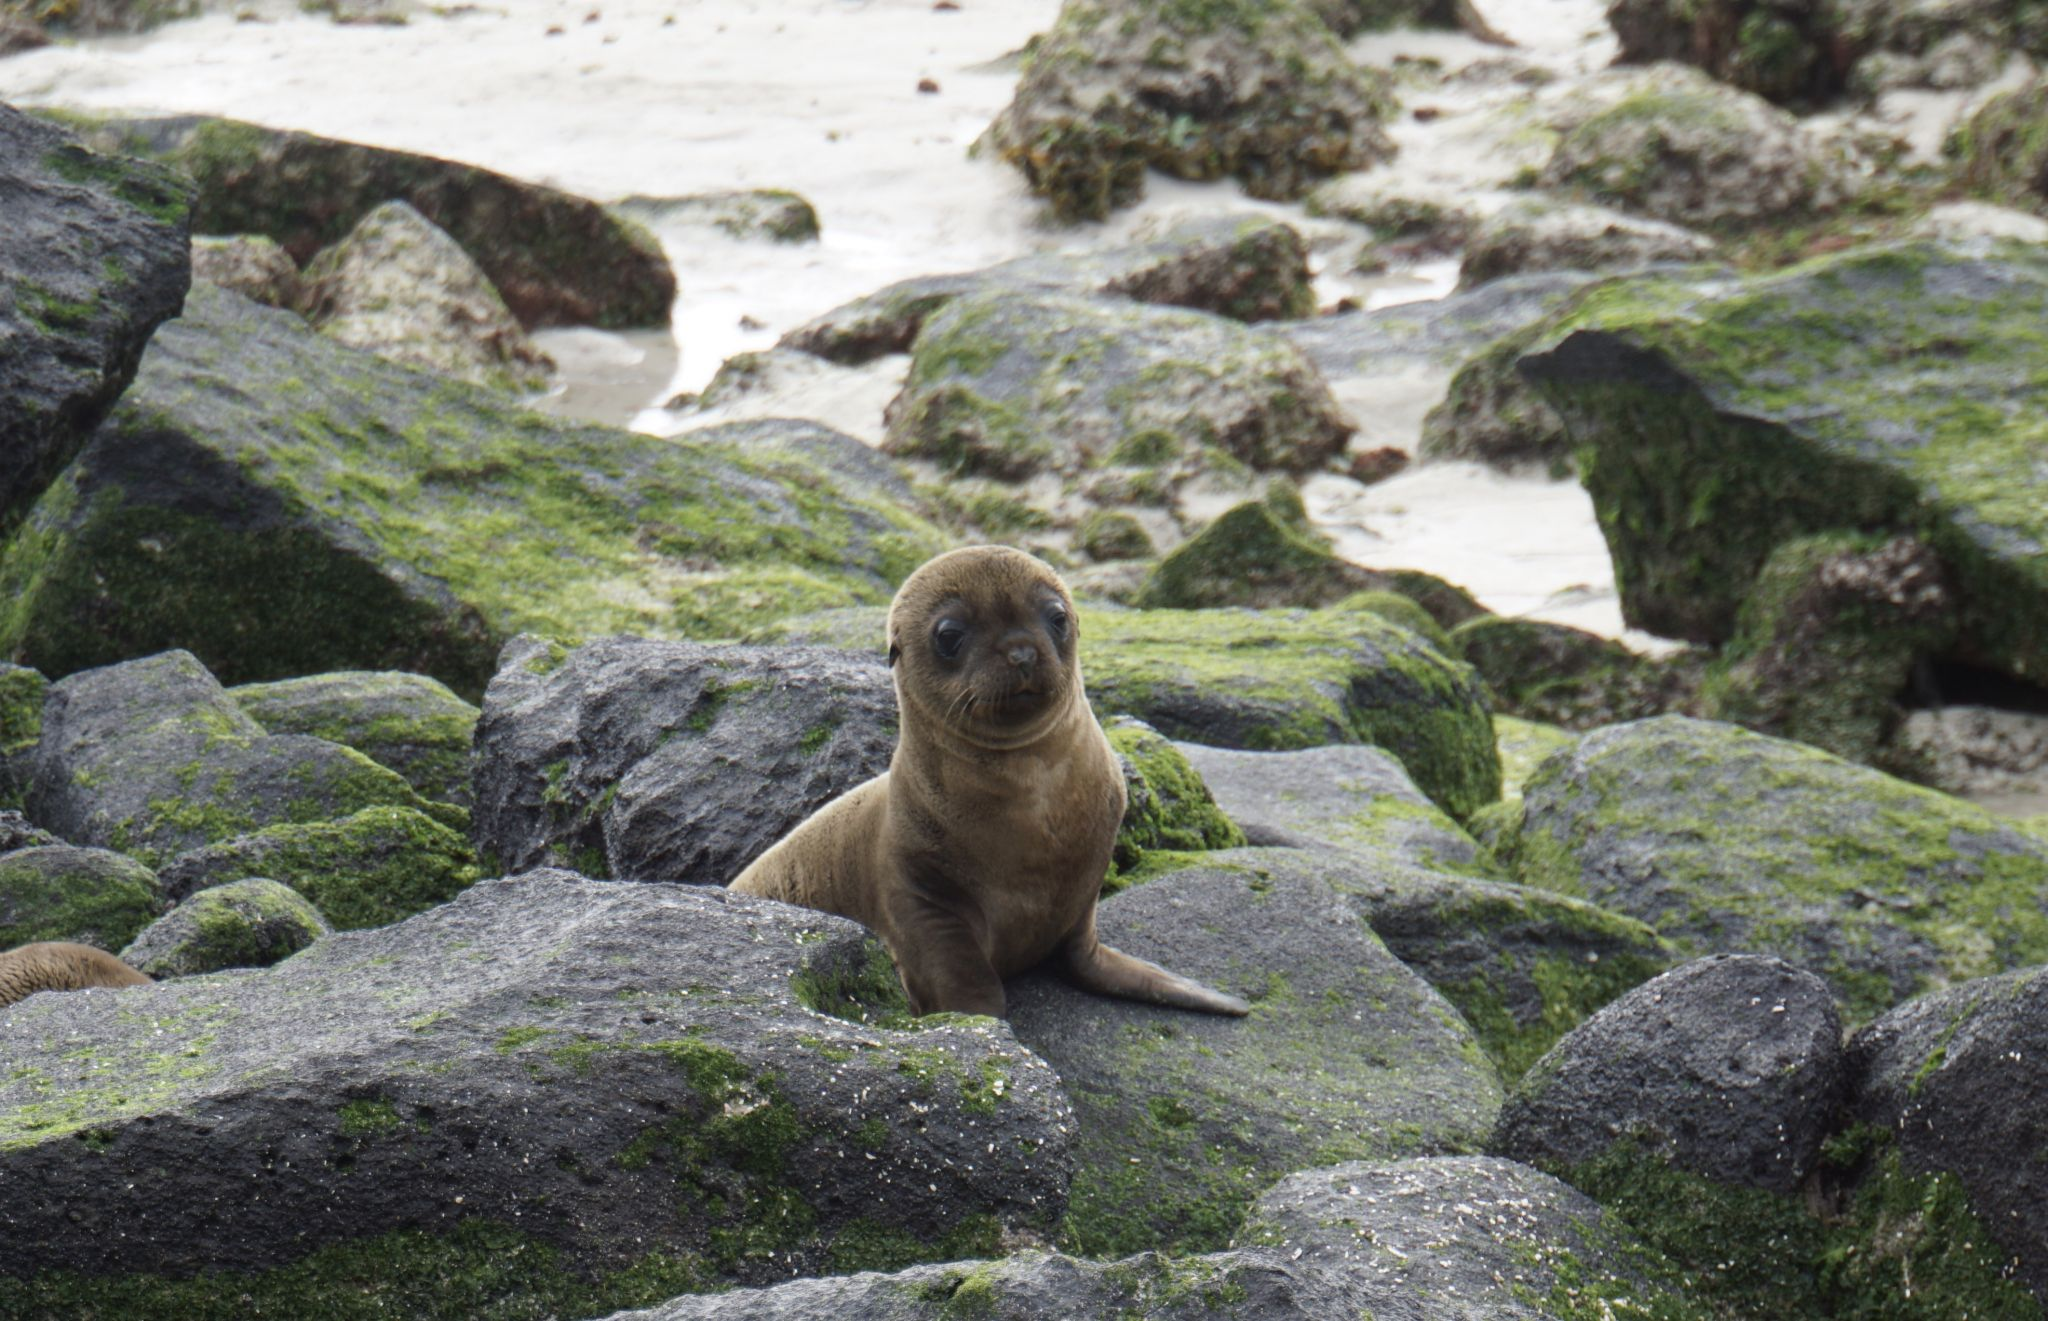 The Galápagos sea lion is one of the animals you can spot on the Galápagos islands